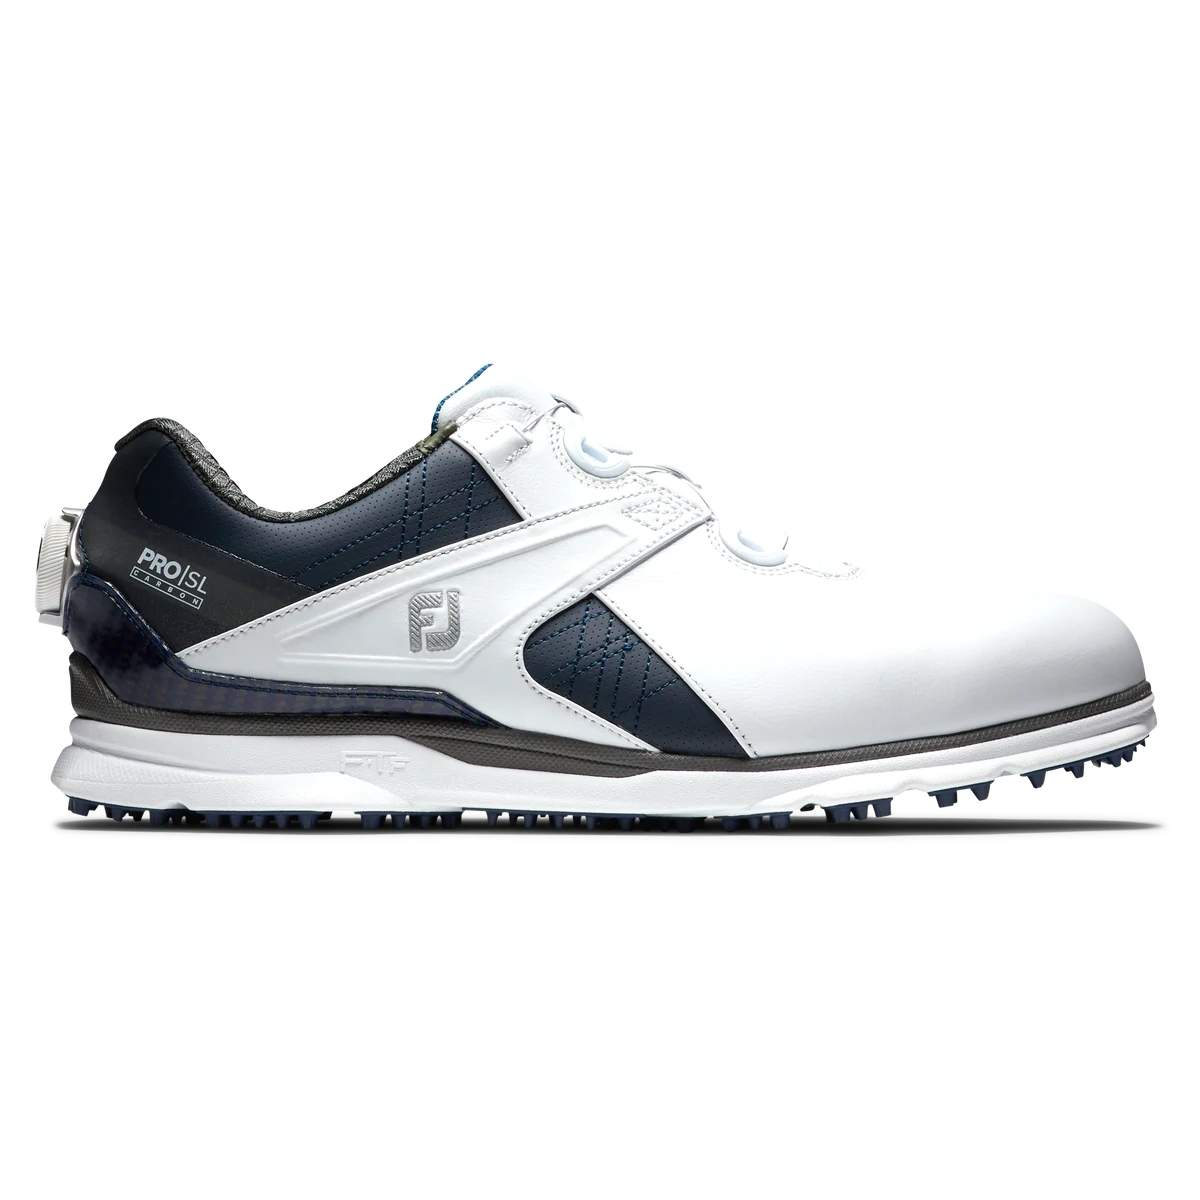 FootJoy Men's Pro|SL Carbon BOA Golf Shoe - White/Navy 53184